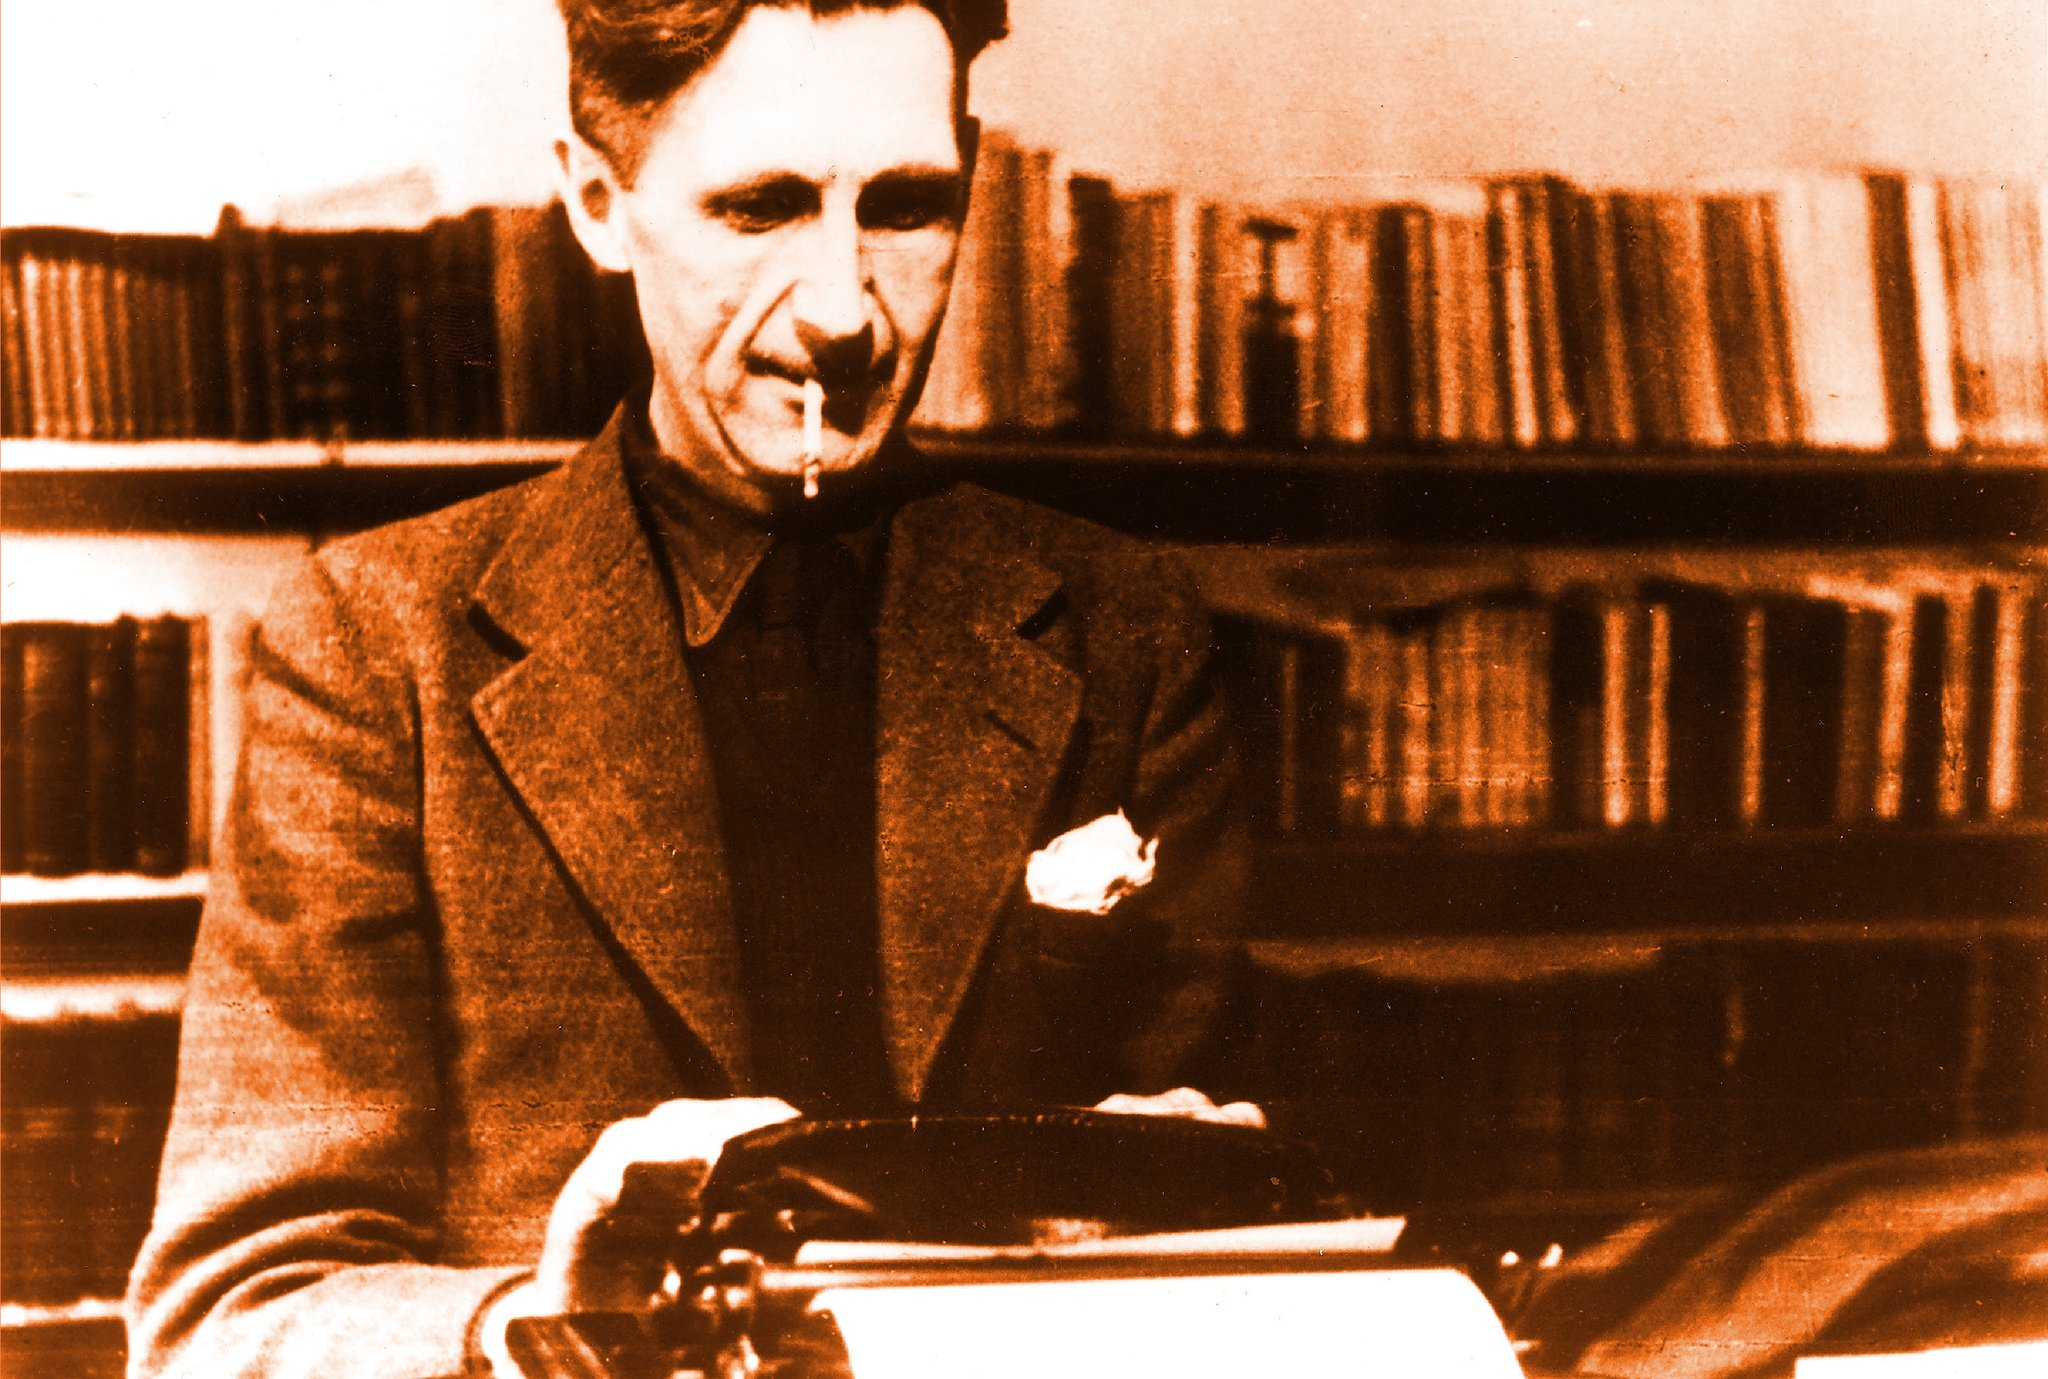 'Who controls the past controls the future. Who controls the present controls the past.'  Nineteen Eighty Four by George Orwell, who died #onthisday in 1950.  #TuesdayThoughts #OrwellDay https://t.co/GMtGQbyrLB